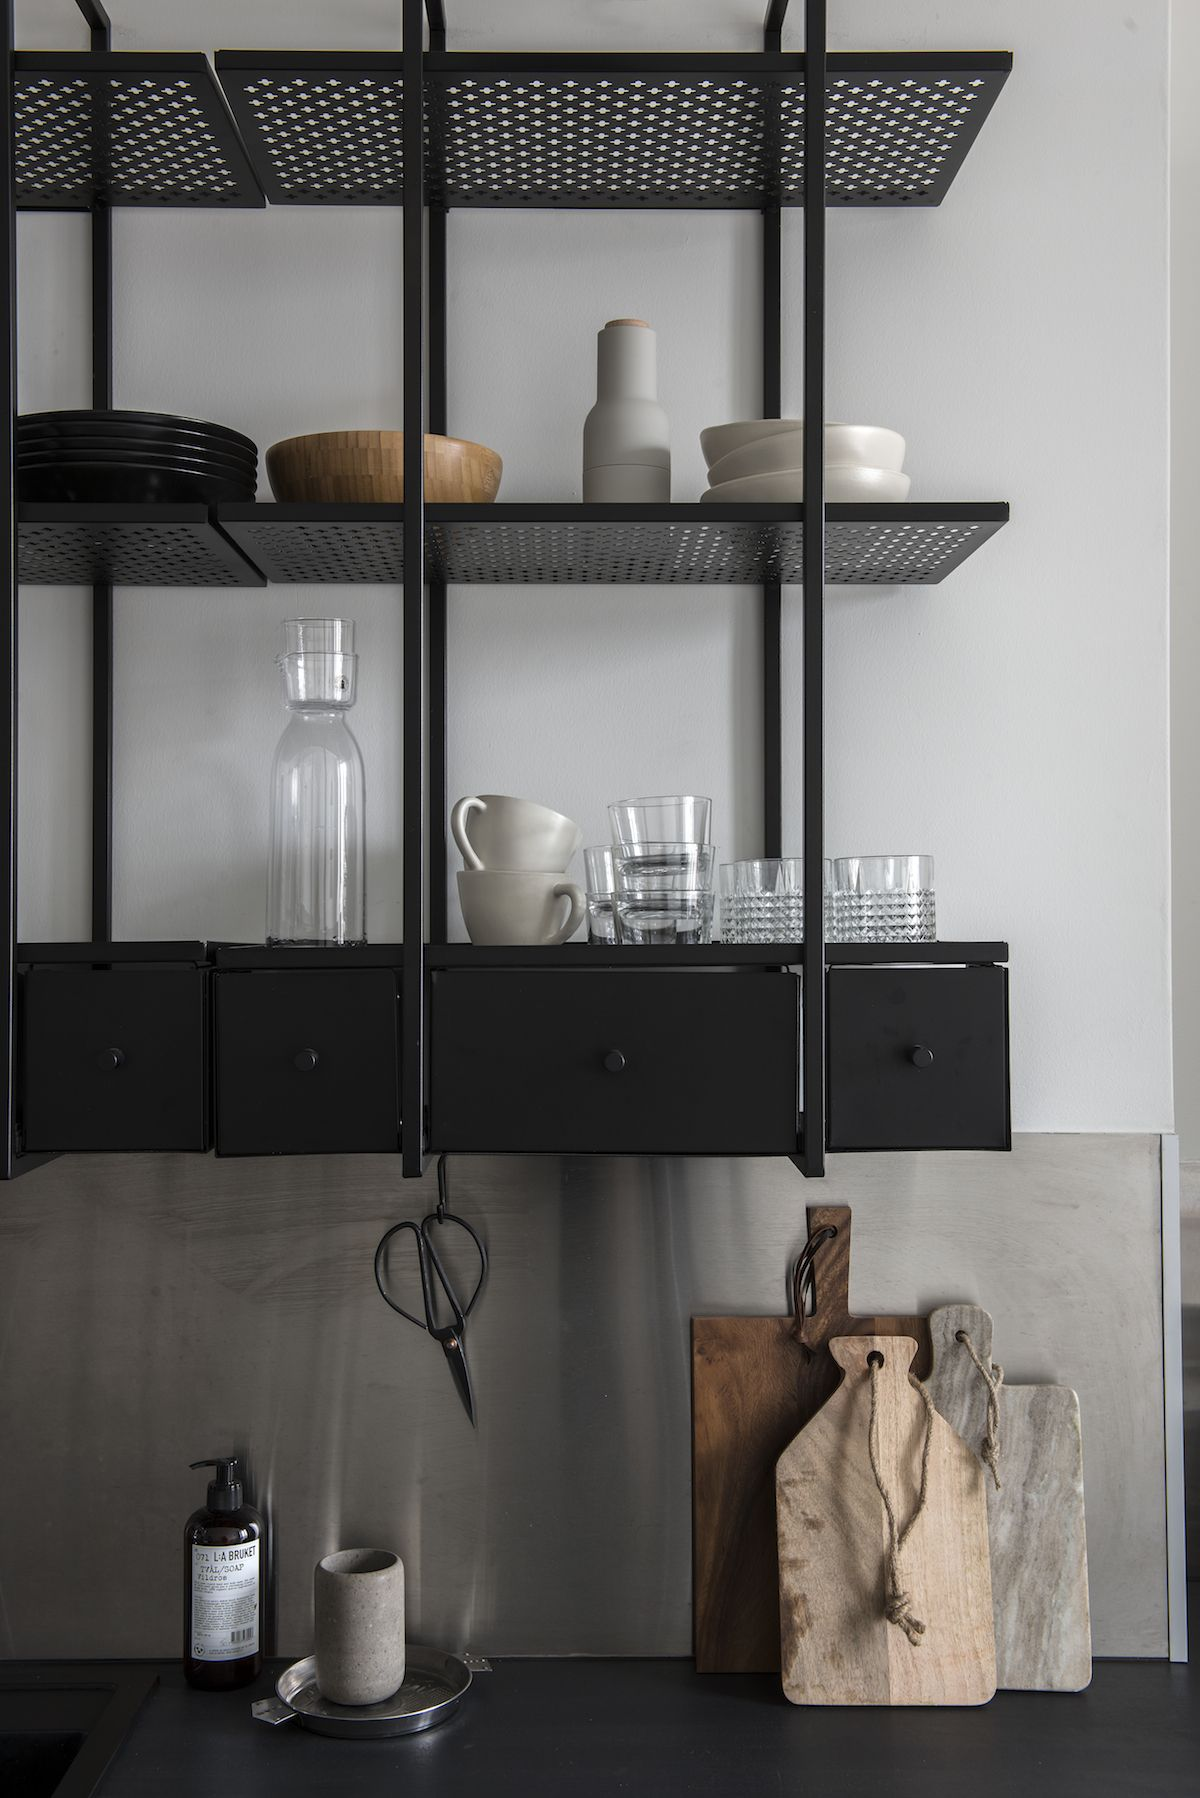 Unusual black metal shelves in the kitchen | open shelving | black kitchen  storage | kitchen styling | Beautiful Helsinki Home - via Coco Lapine Design